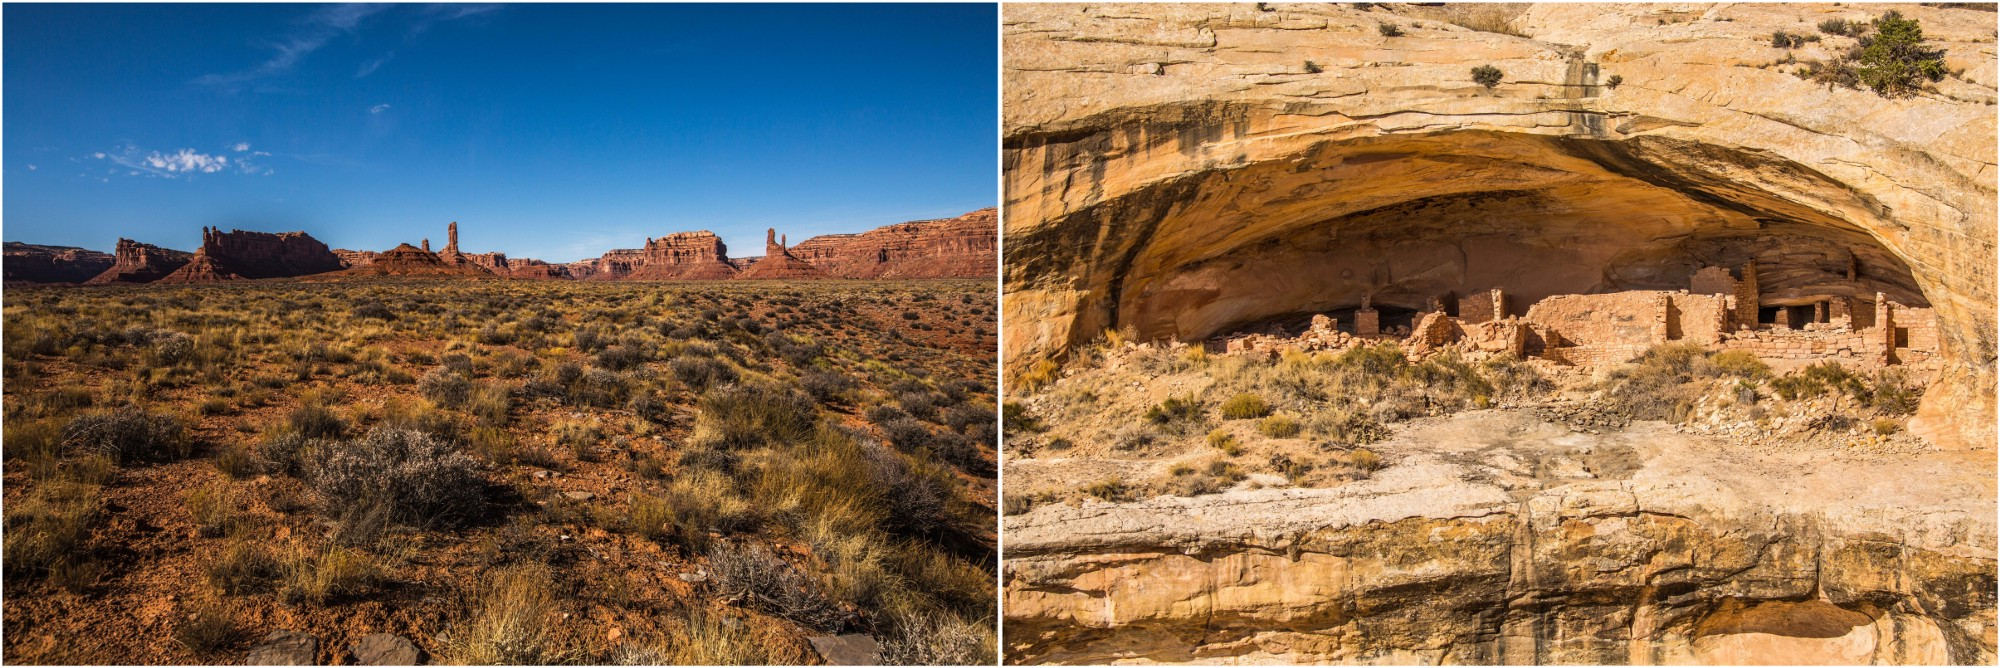 - Left: The sacred landscape of the Valley of Gods, in Bears Ears National Monument. Right: An Ancestral Puebloan settlement at Butler Wash Ruins.